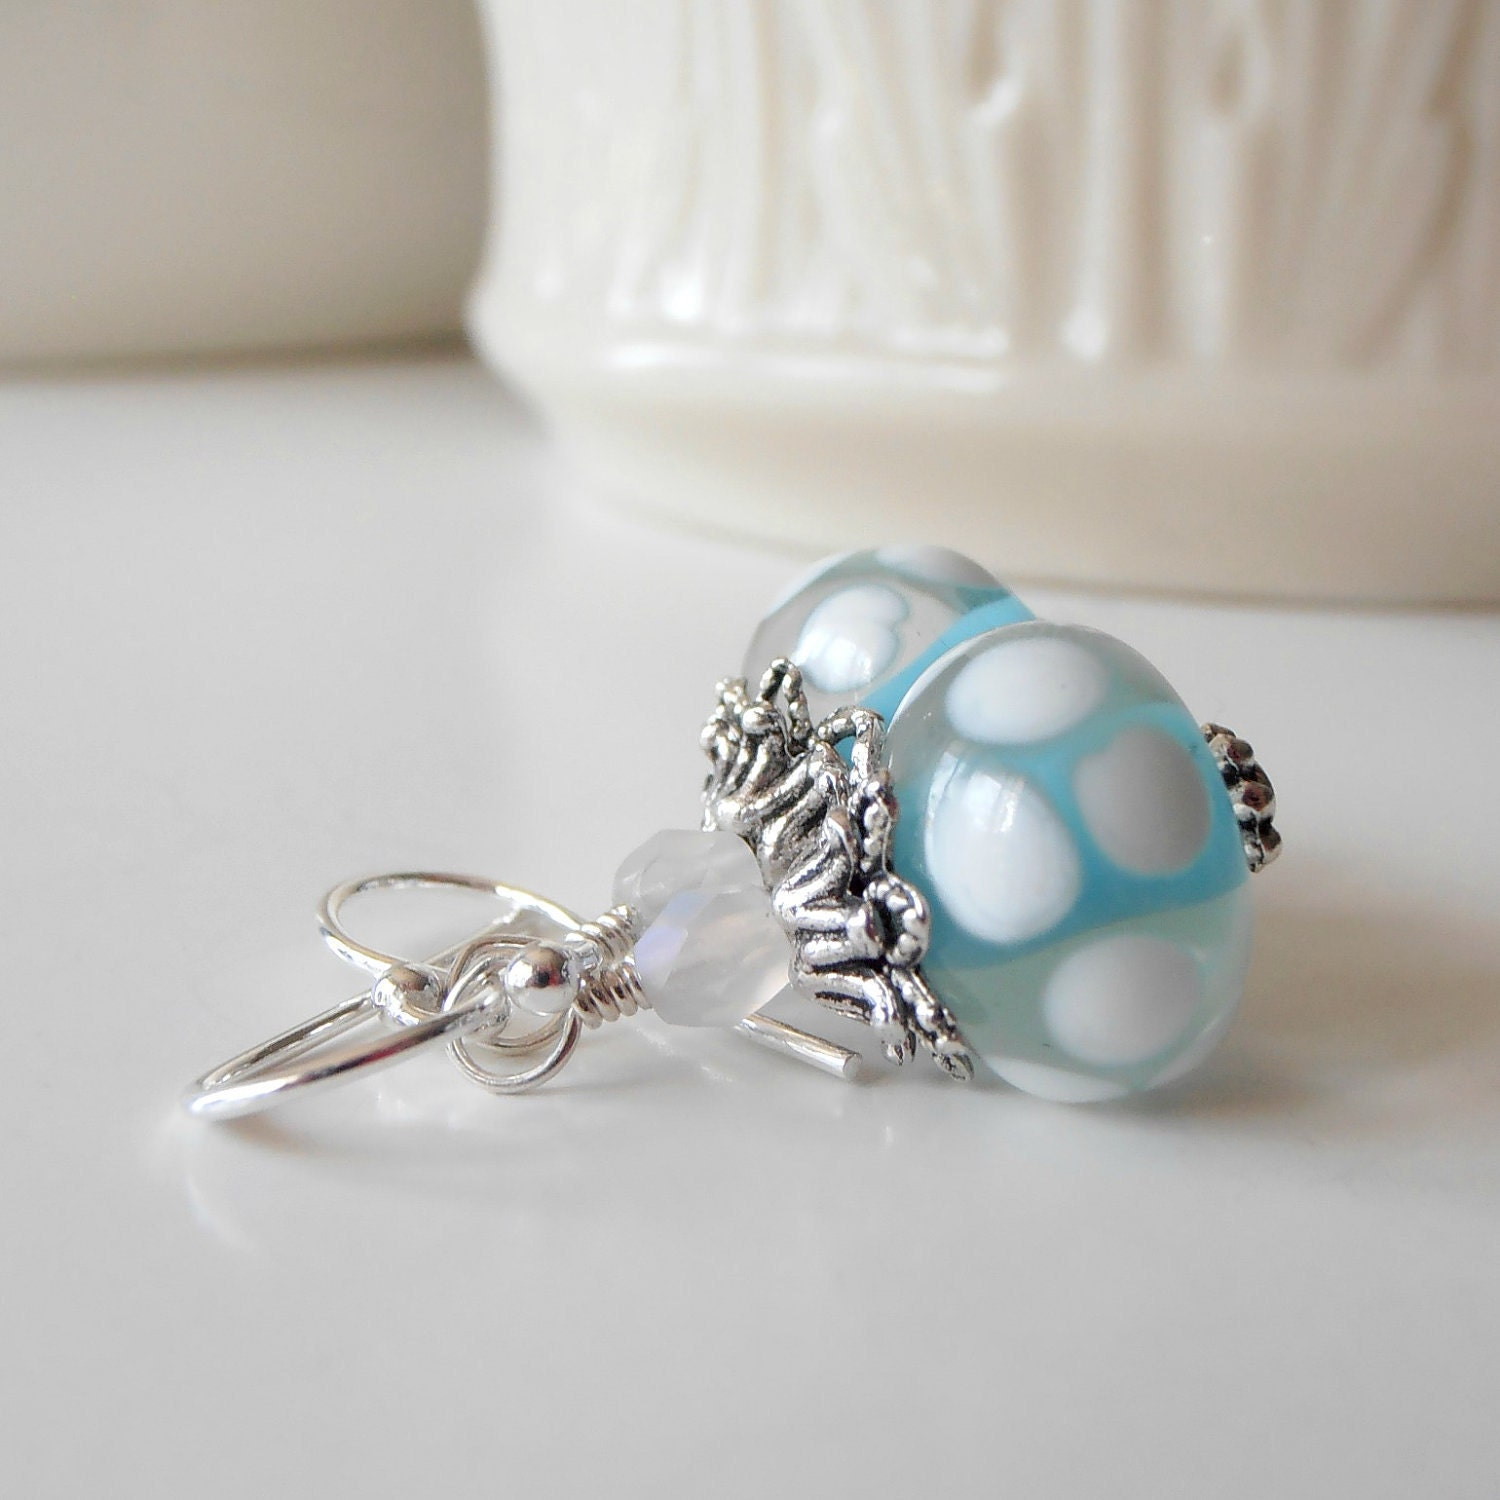 Beaded Jewelry Aqua Earrings White Polka Dot  ...